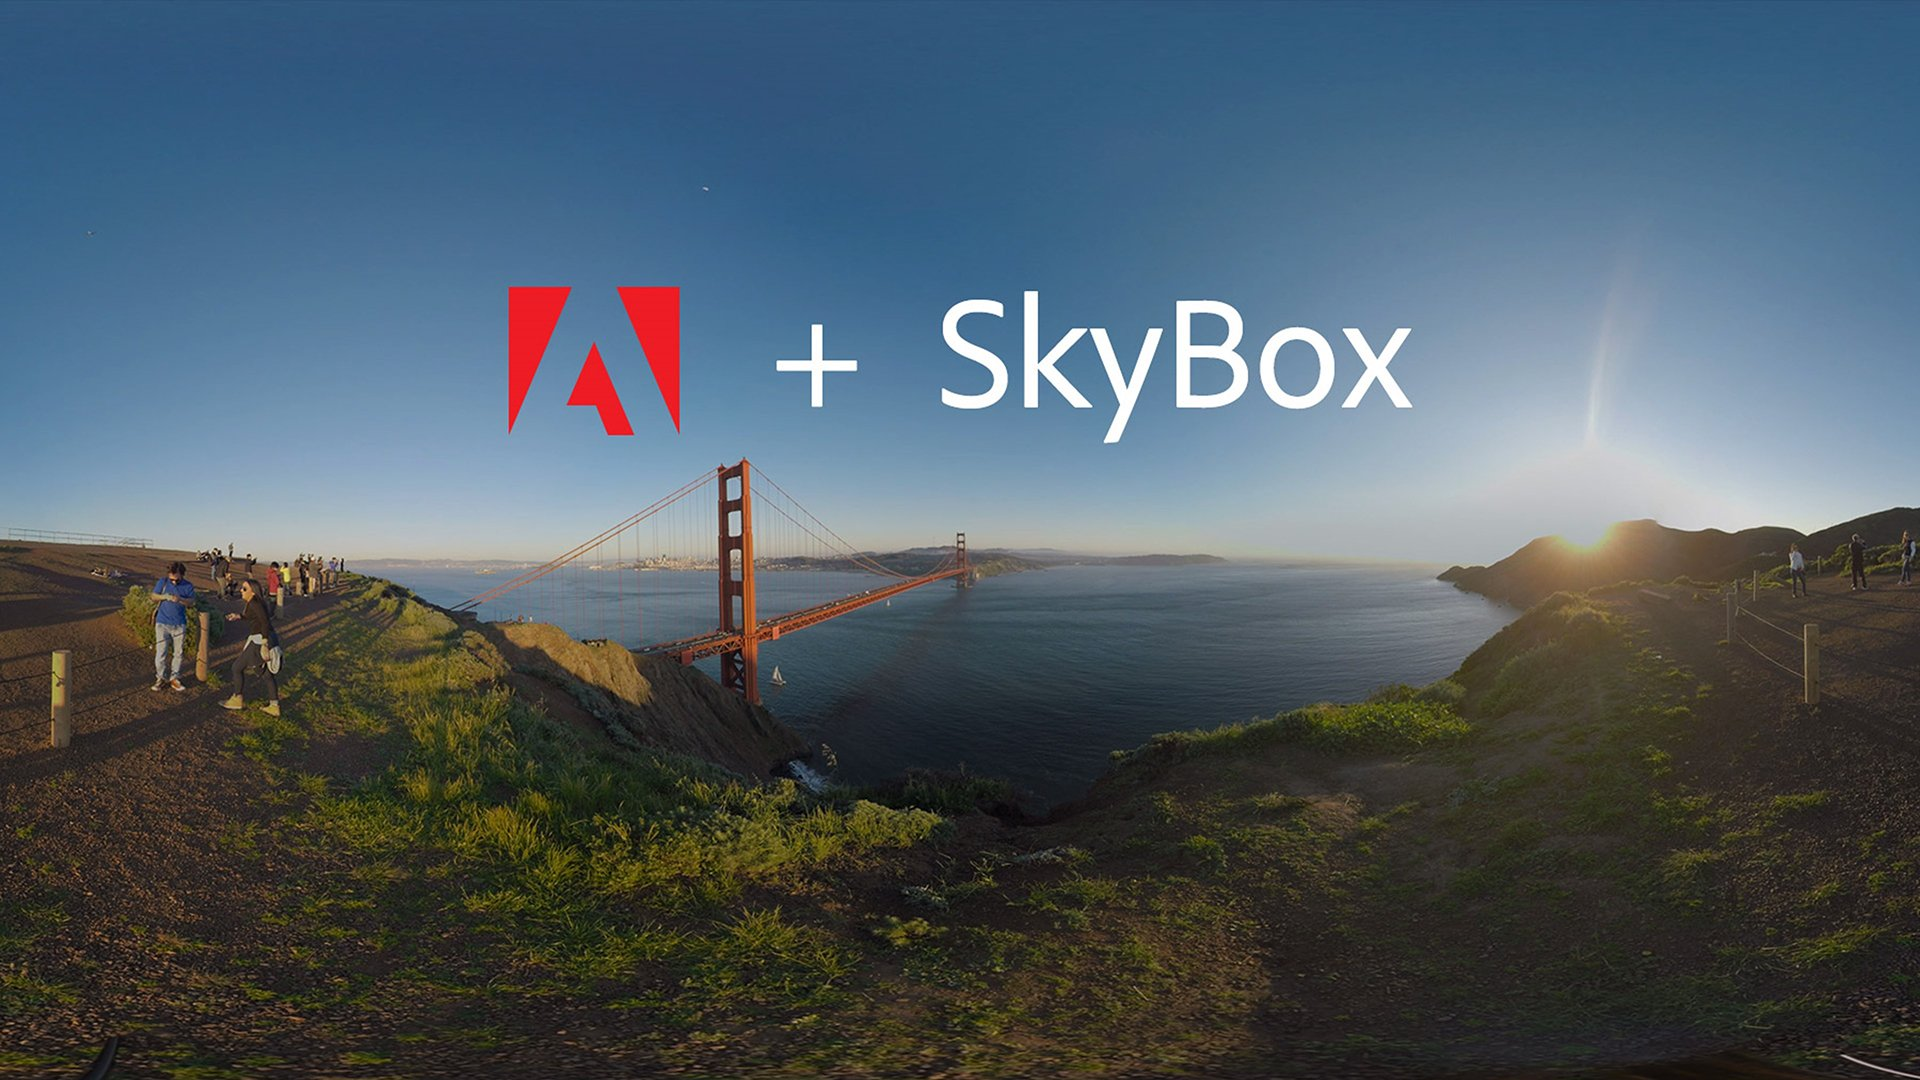 Adobe showed off it's newly acquired SkyBox plug-ins for editing and applying effects and titles on 360-degree content using HP's VR-Ready ZBook 17 G4 with NVIDIA P5000 graphics.